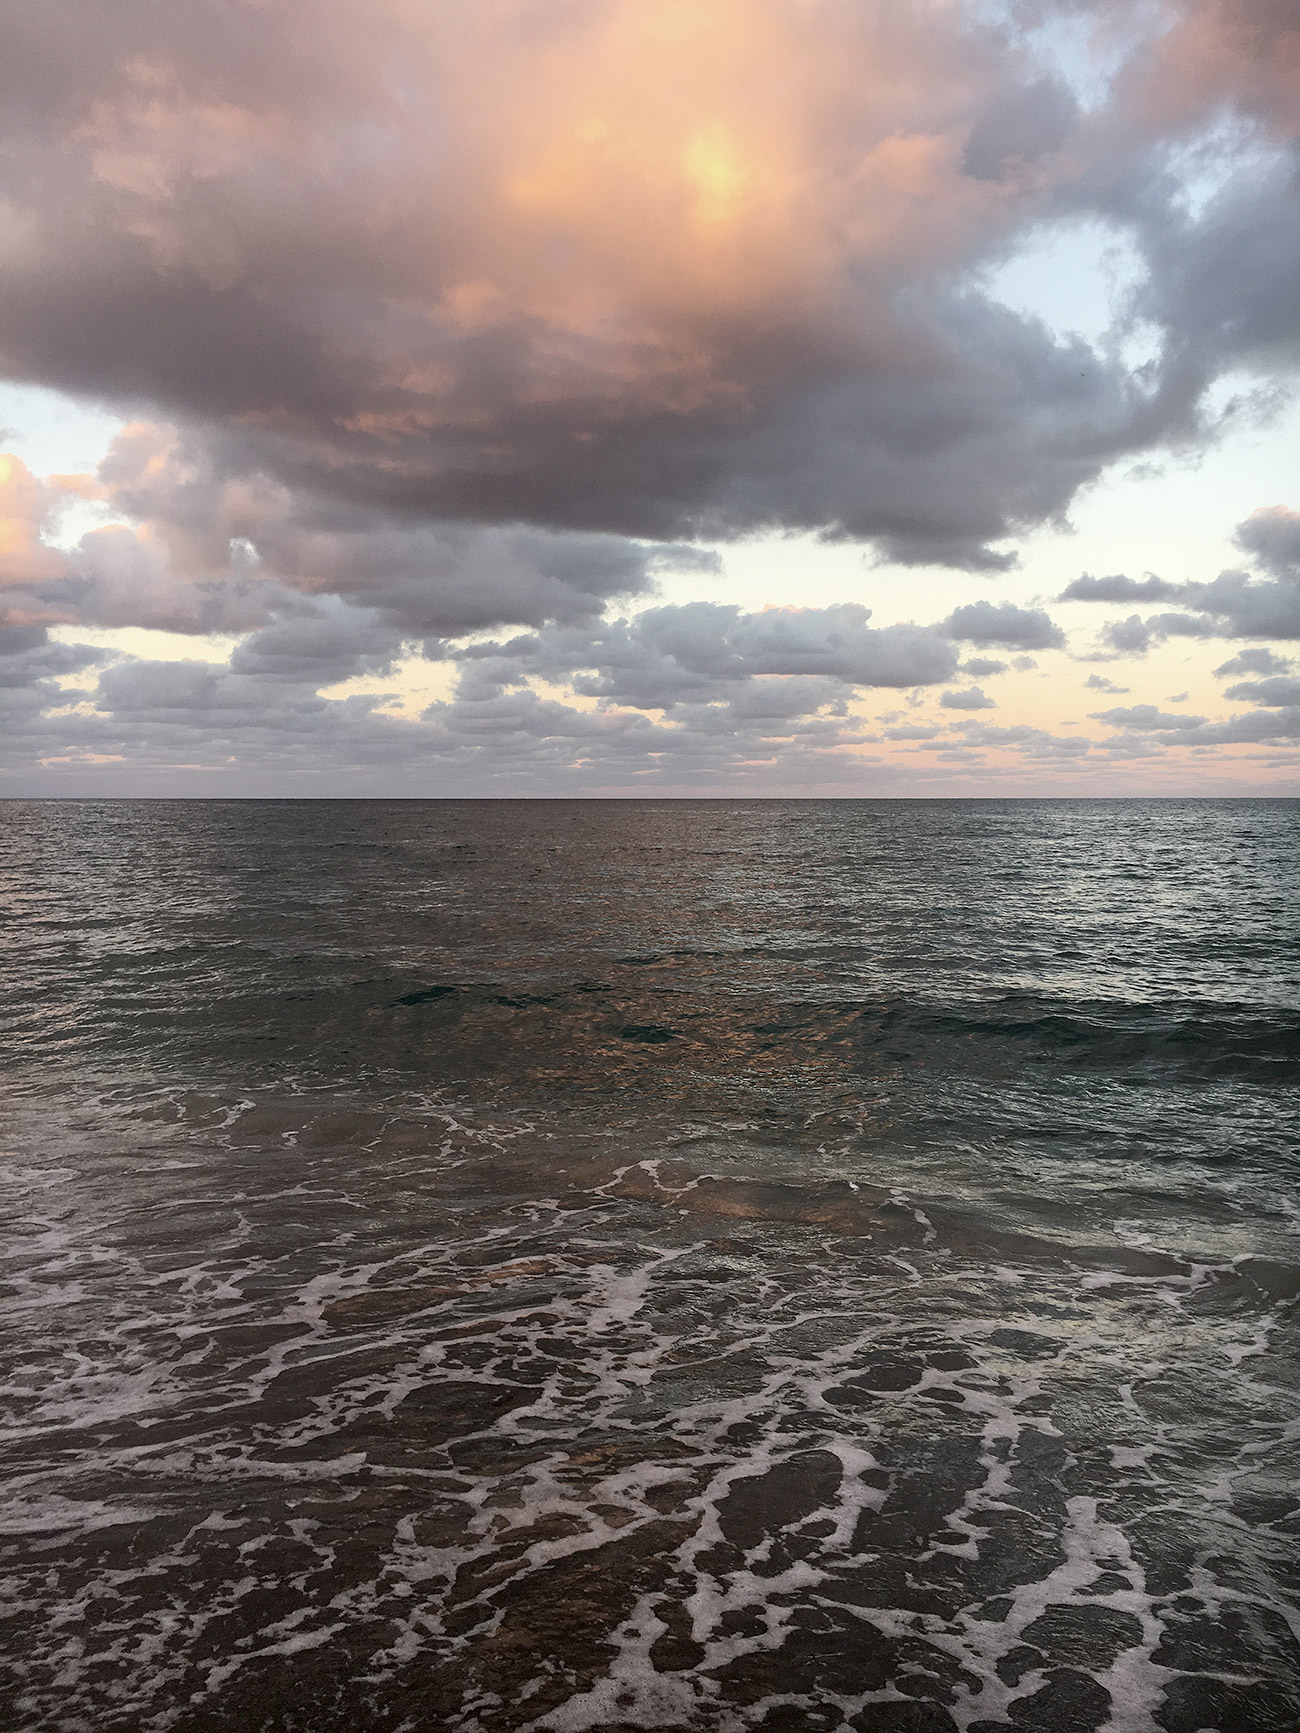 Inspirational photo of the ocean on a cloudy day